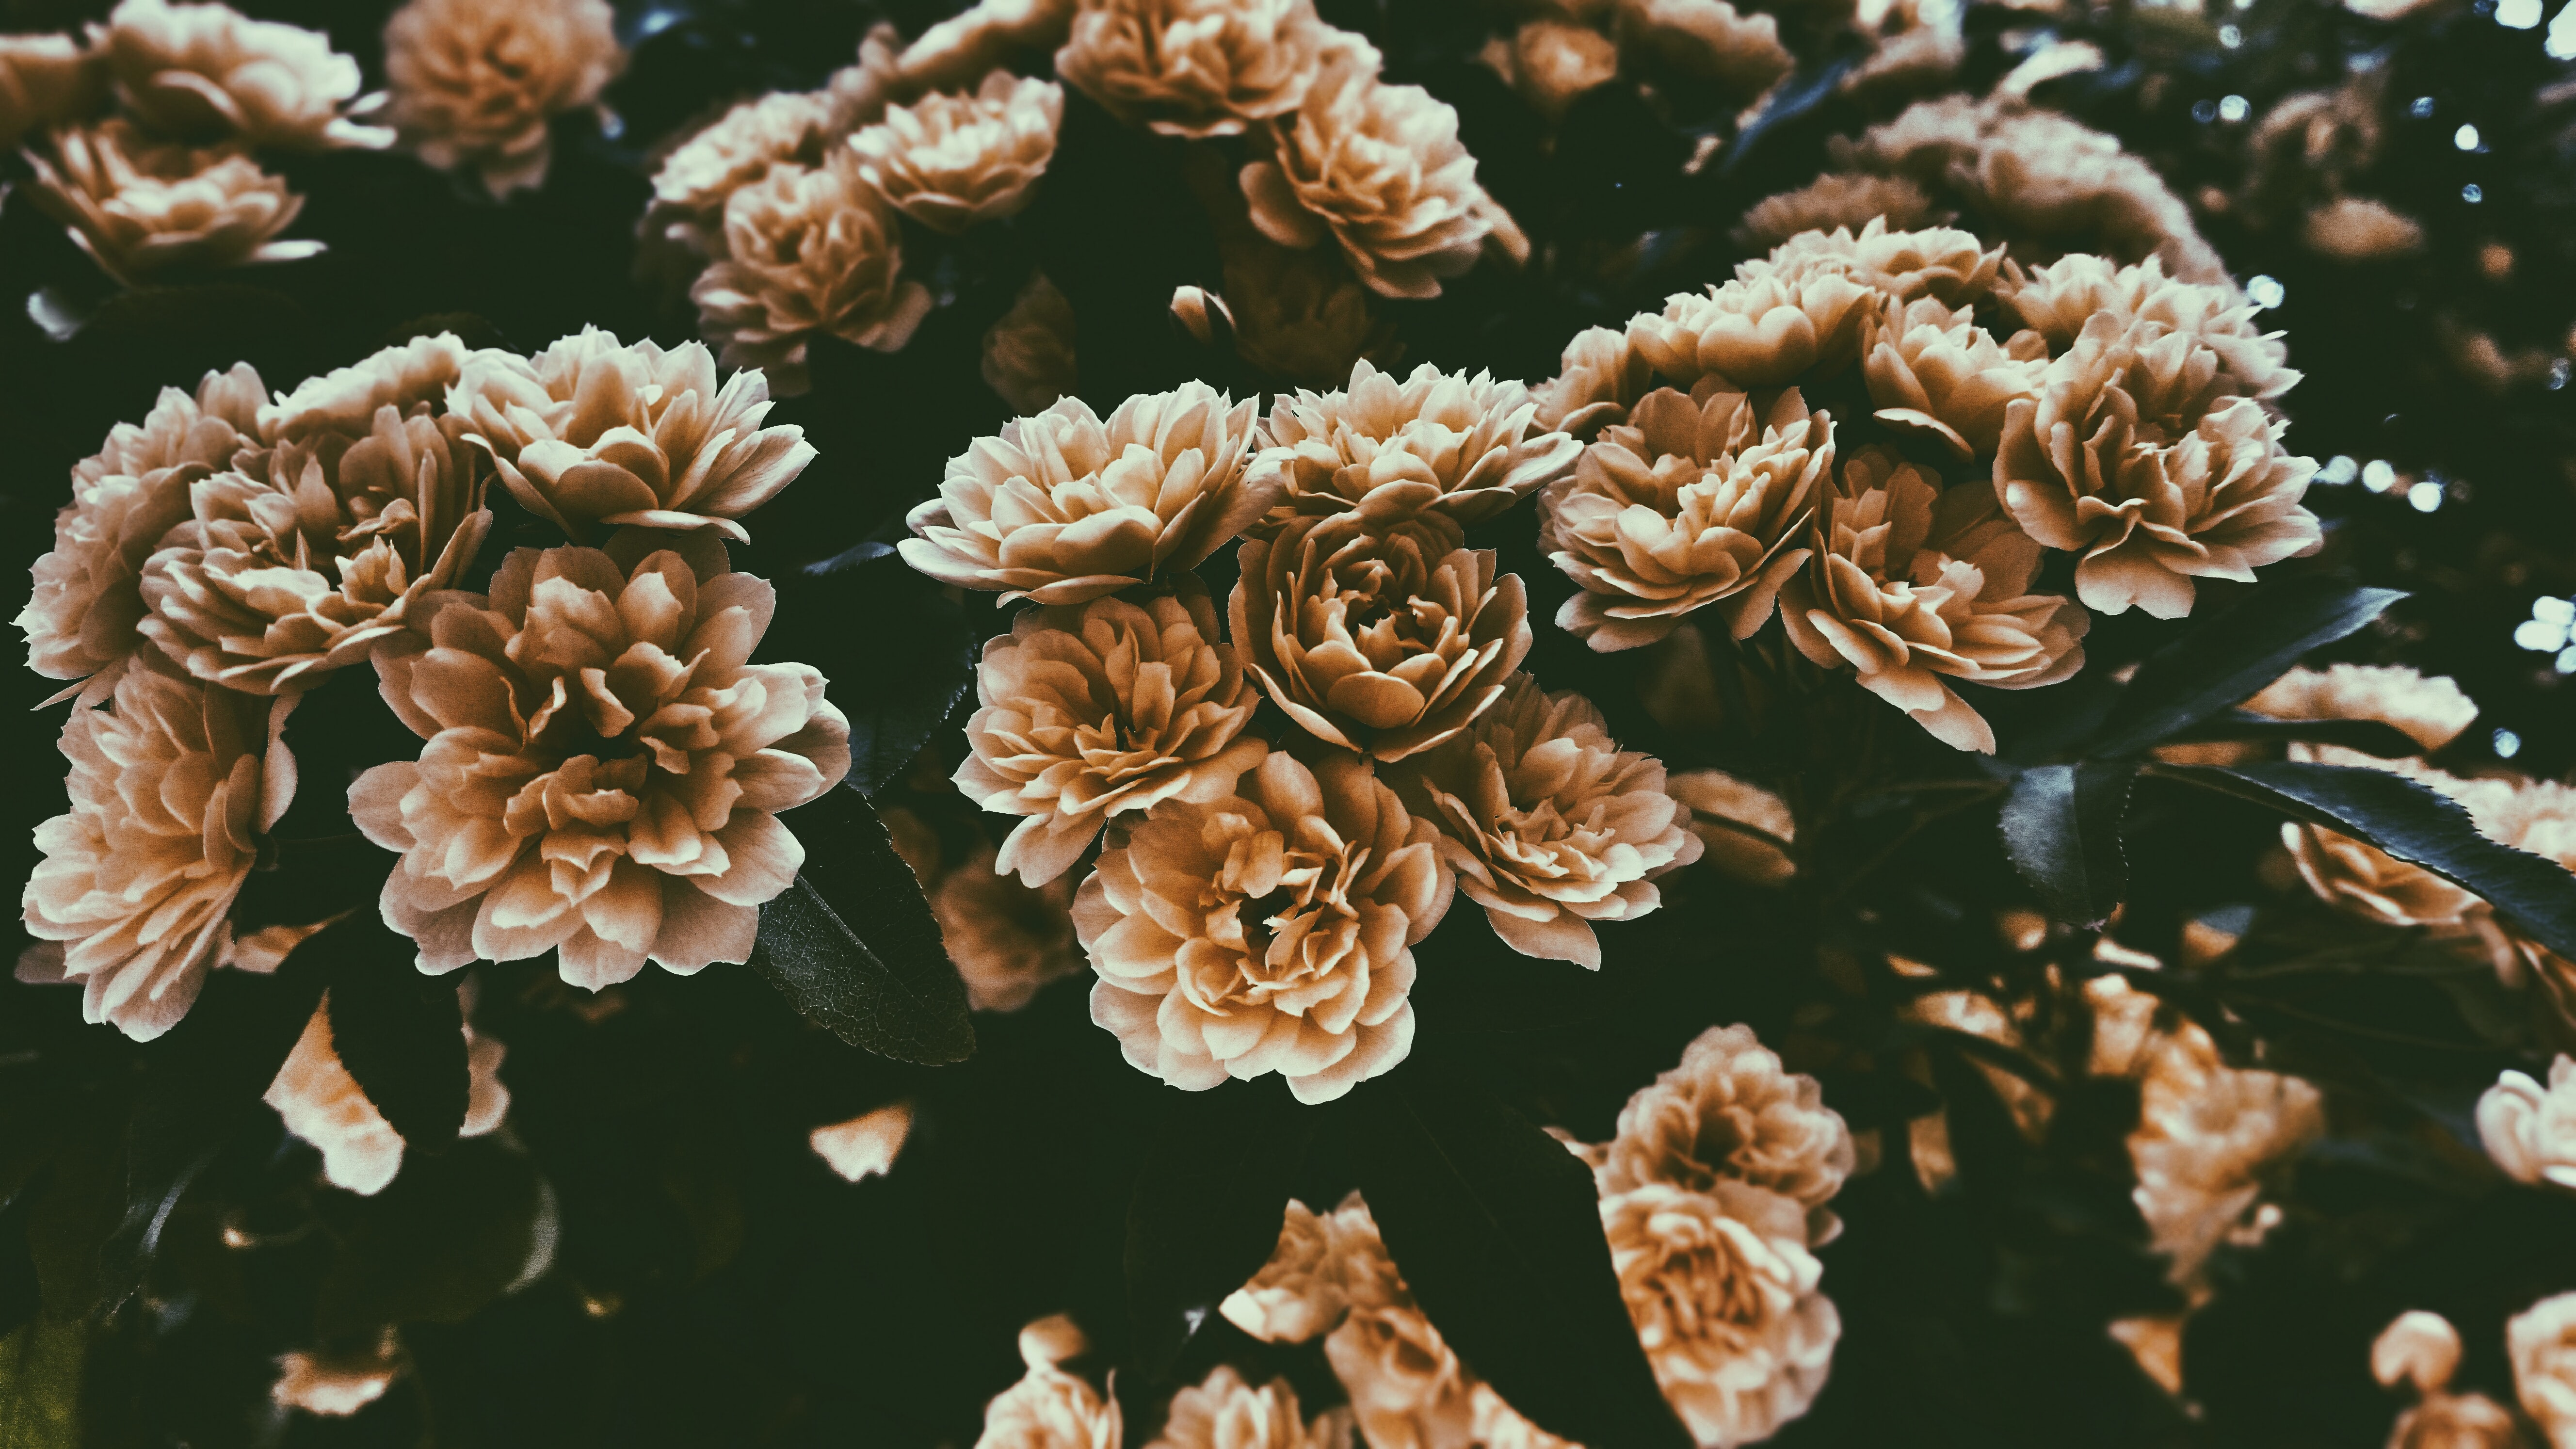 A desaturated shot of large rose-like flowers